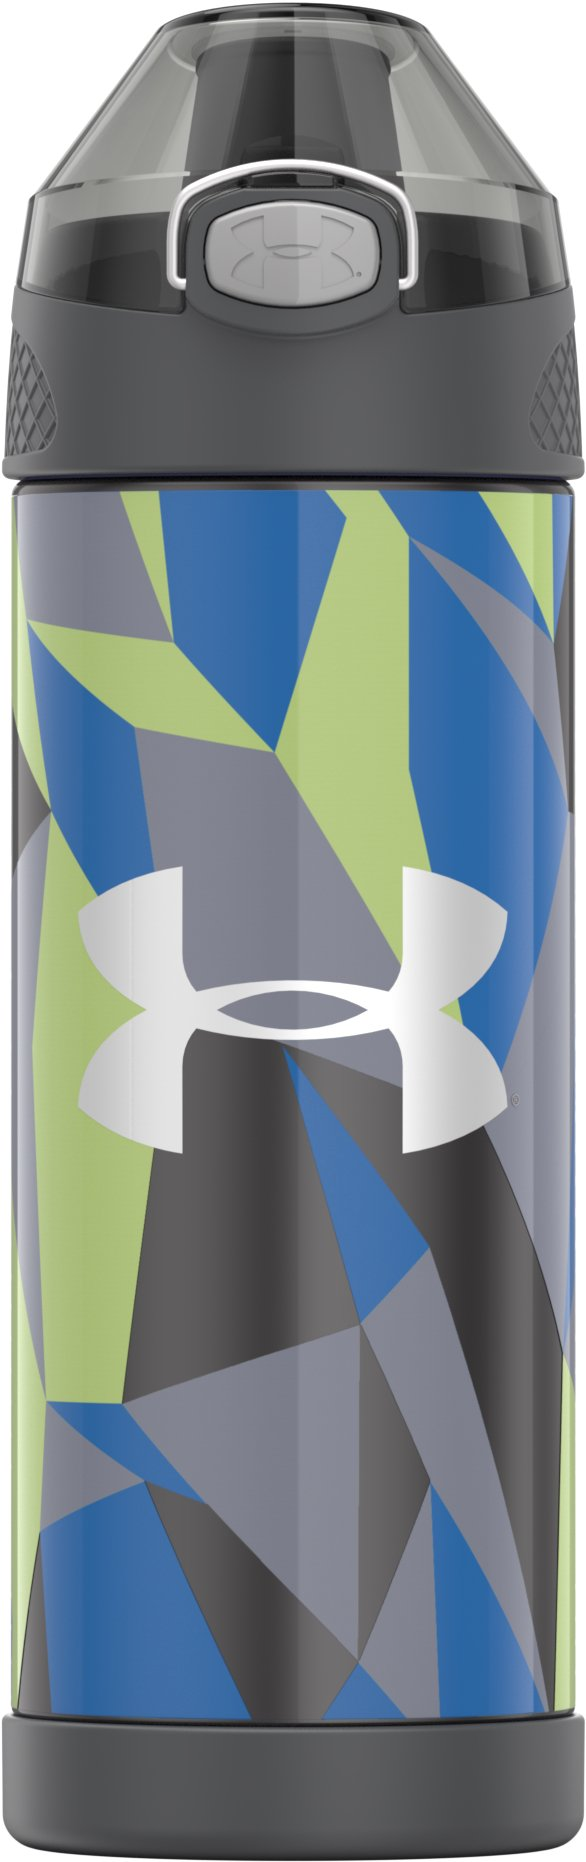 Beyond 16 oz. Vacuum Insulated Stainless Steel Water Bottle, Gray